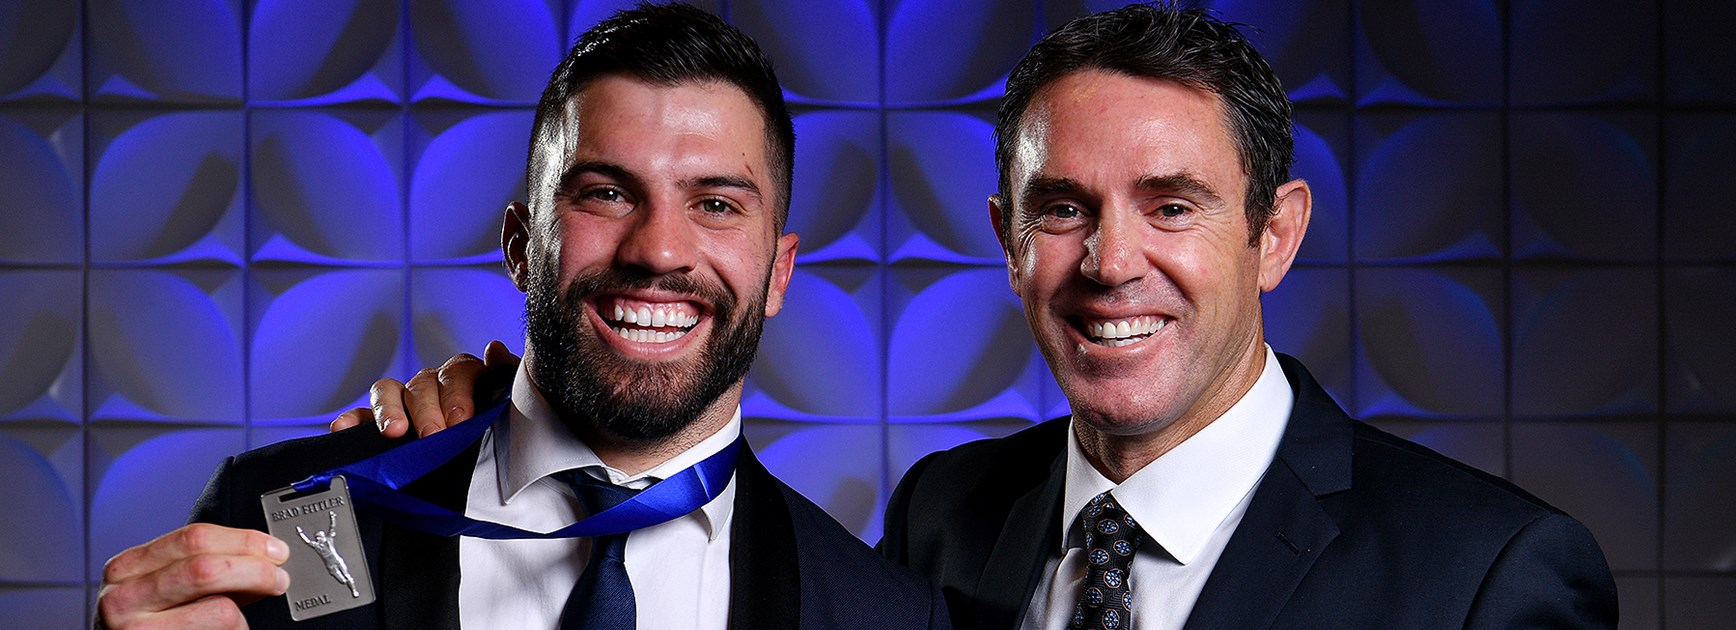 James Tedesco Awarded the Brad Fittler Medal